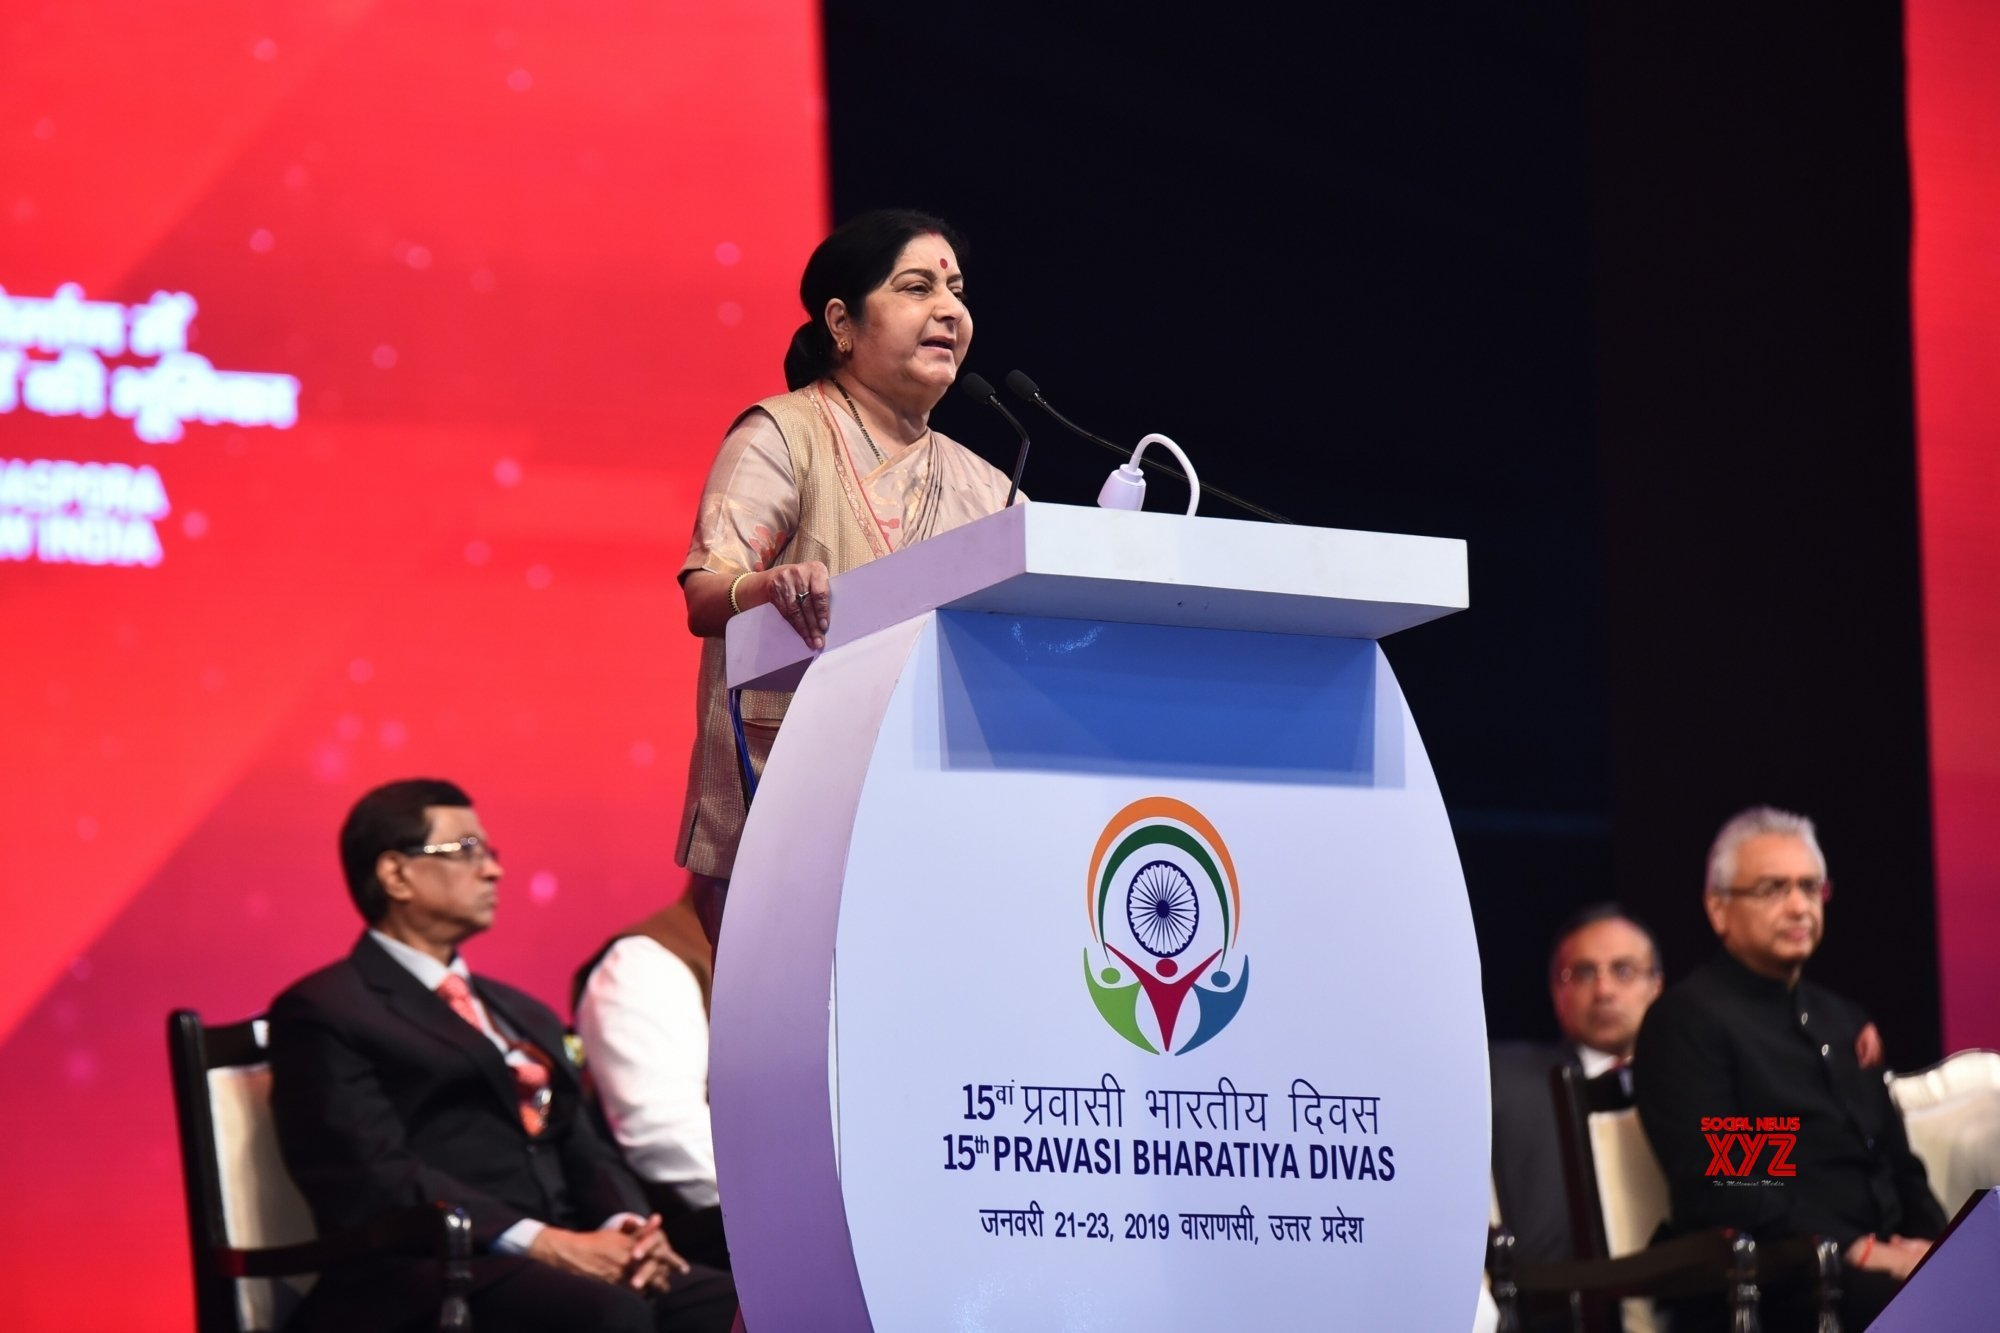 Minister of External Affairs Sushma Swaraj at Pravasi Bharatiya Divas PBD 2019 at Varanasi. Photo courtesy: Twitter/@MEAIndia